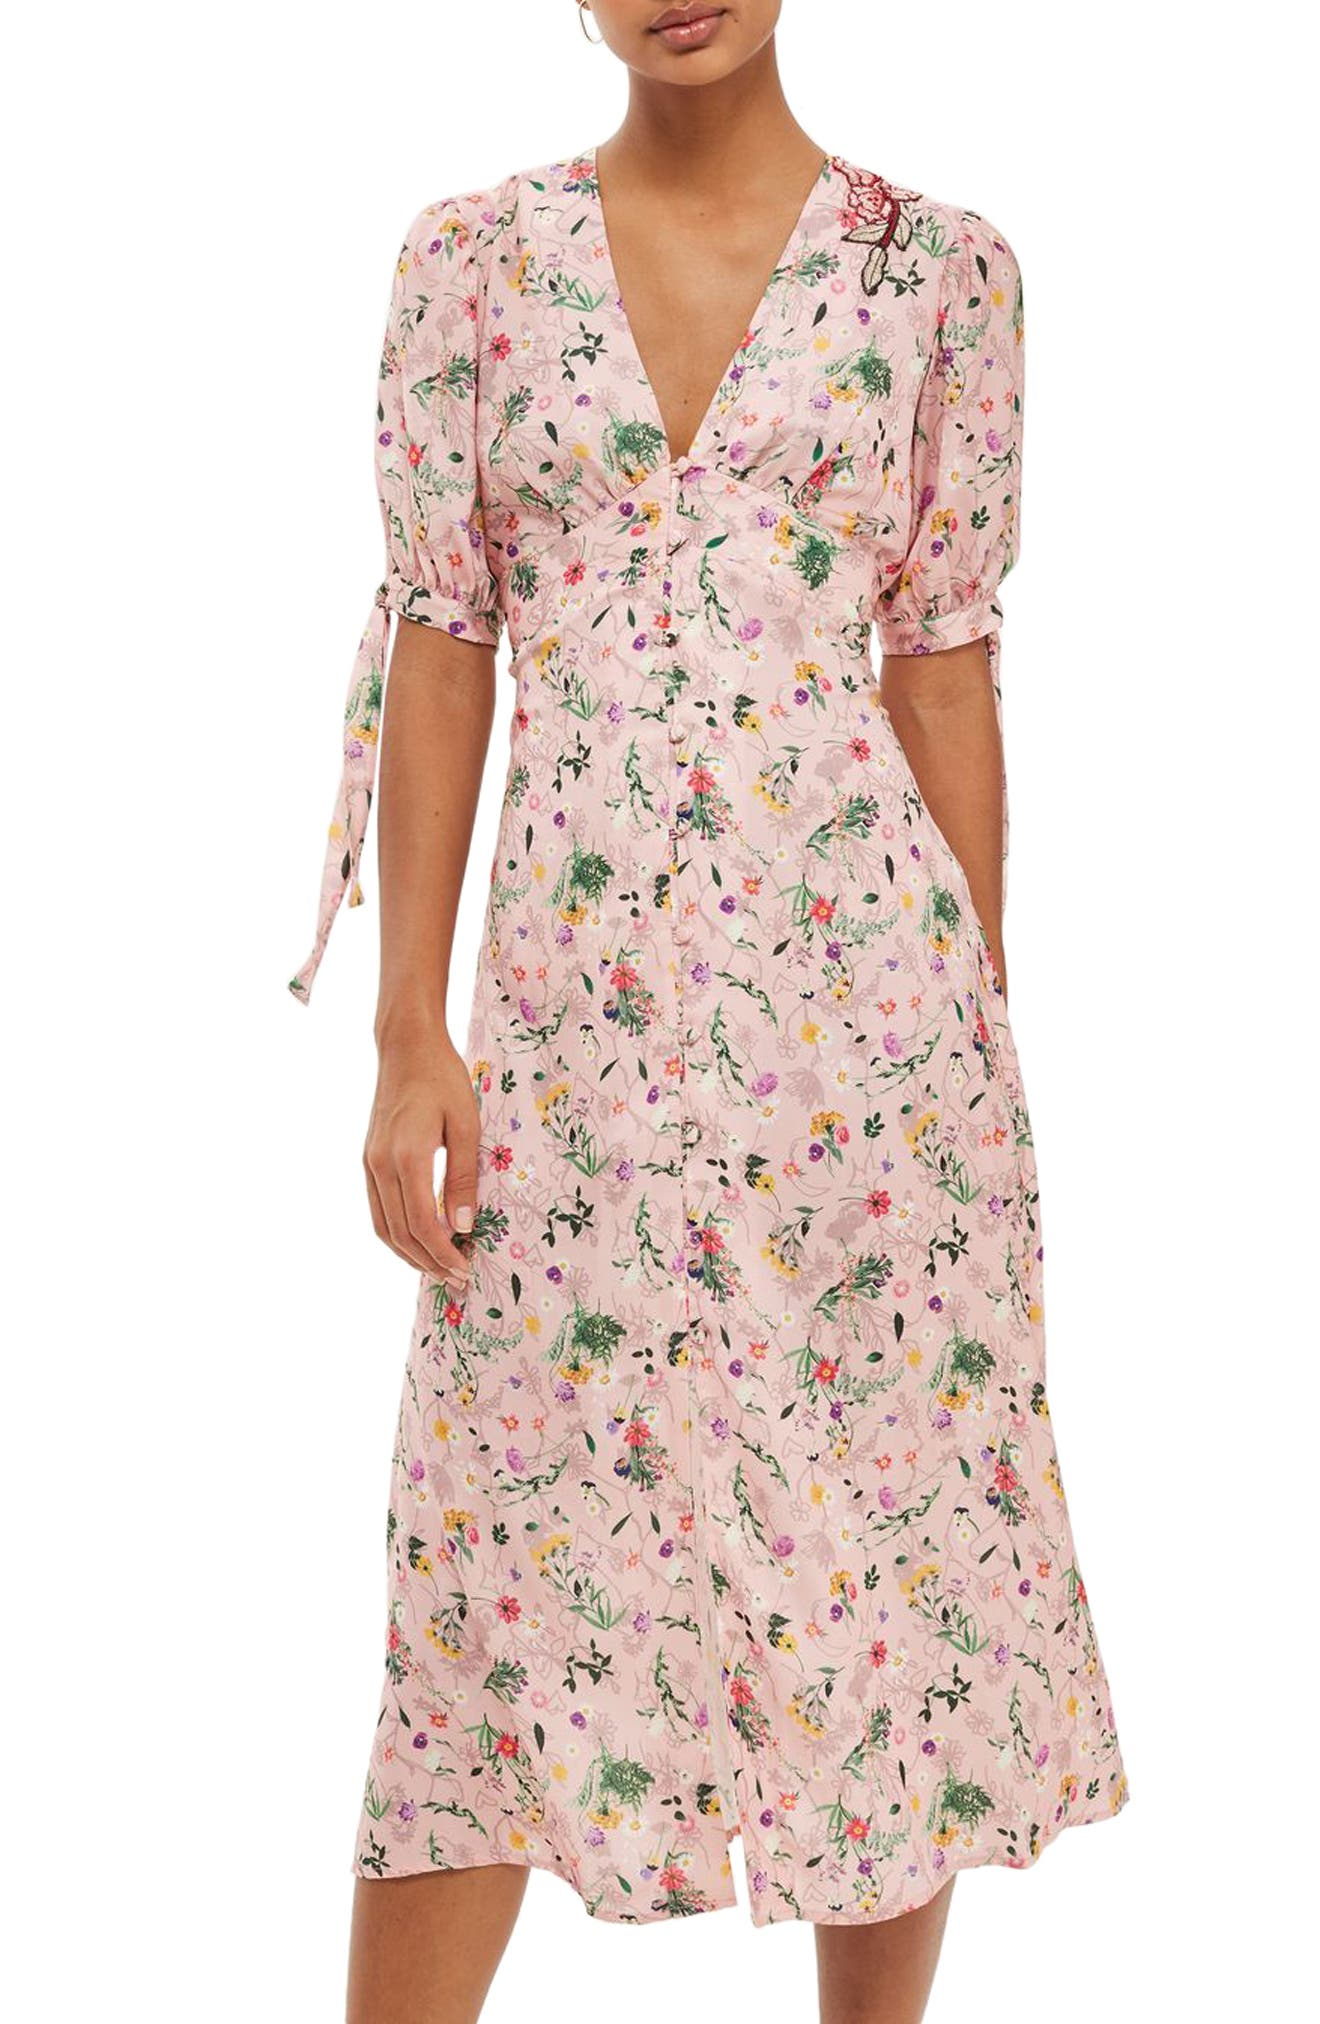 Topshop Floral Appliqué Print Midi Dress